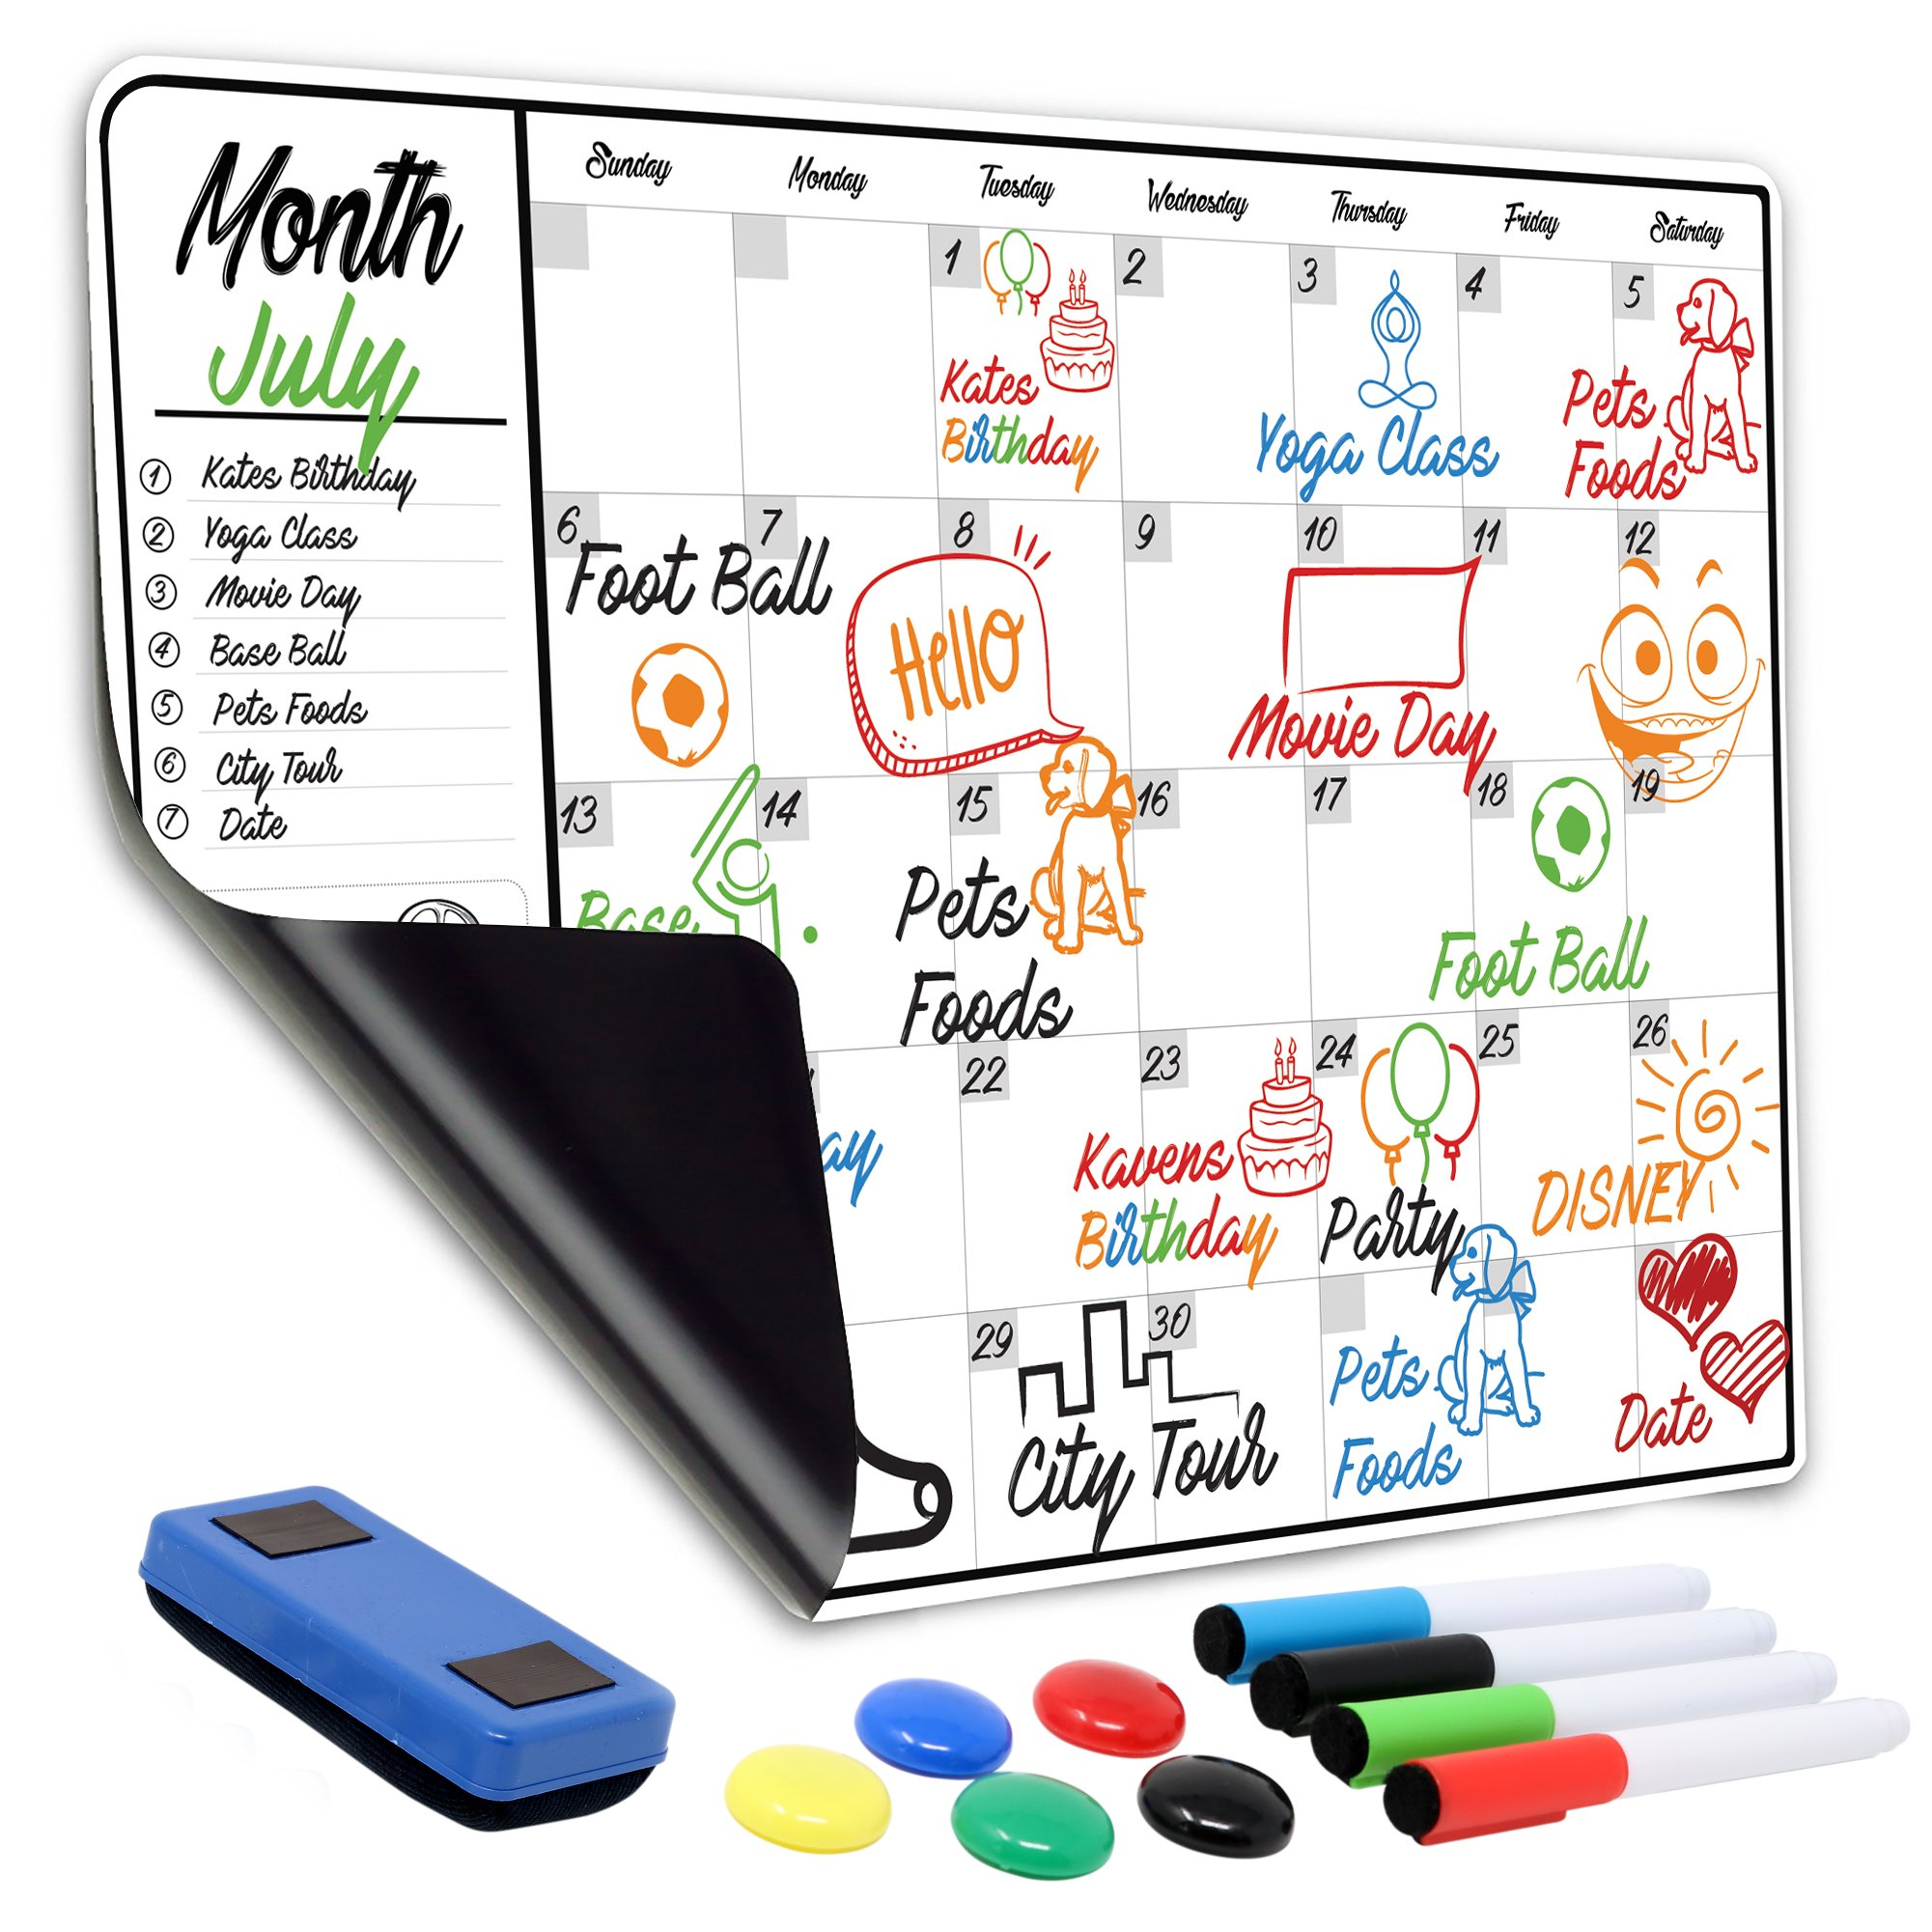 "Monthly Magnetic Dry Erase Calendar | 13"" x 19"" Large Magnetic White Board For Refrigerator & Wall With 1 Eraser, 4 Markers & 5 Buttons – Meal Menu Grocery Chore To-Do Activity Smart Monthly Planner"